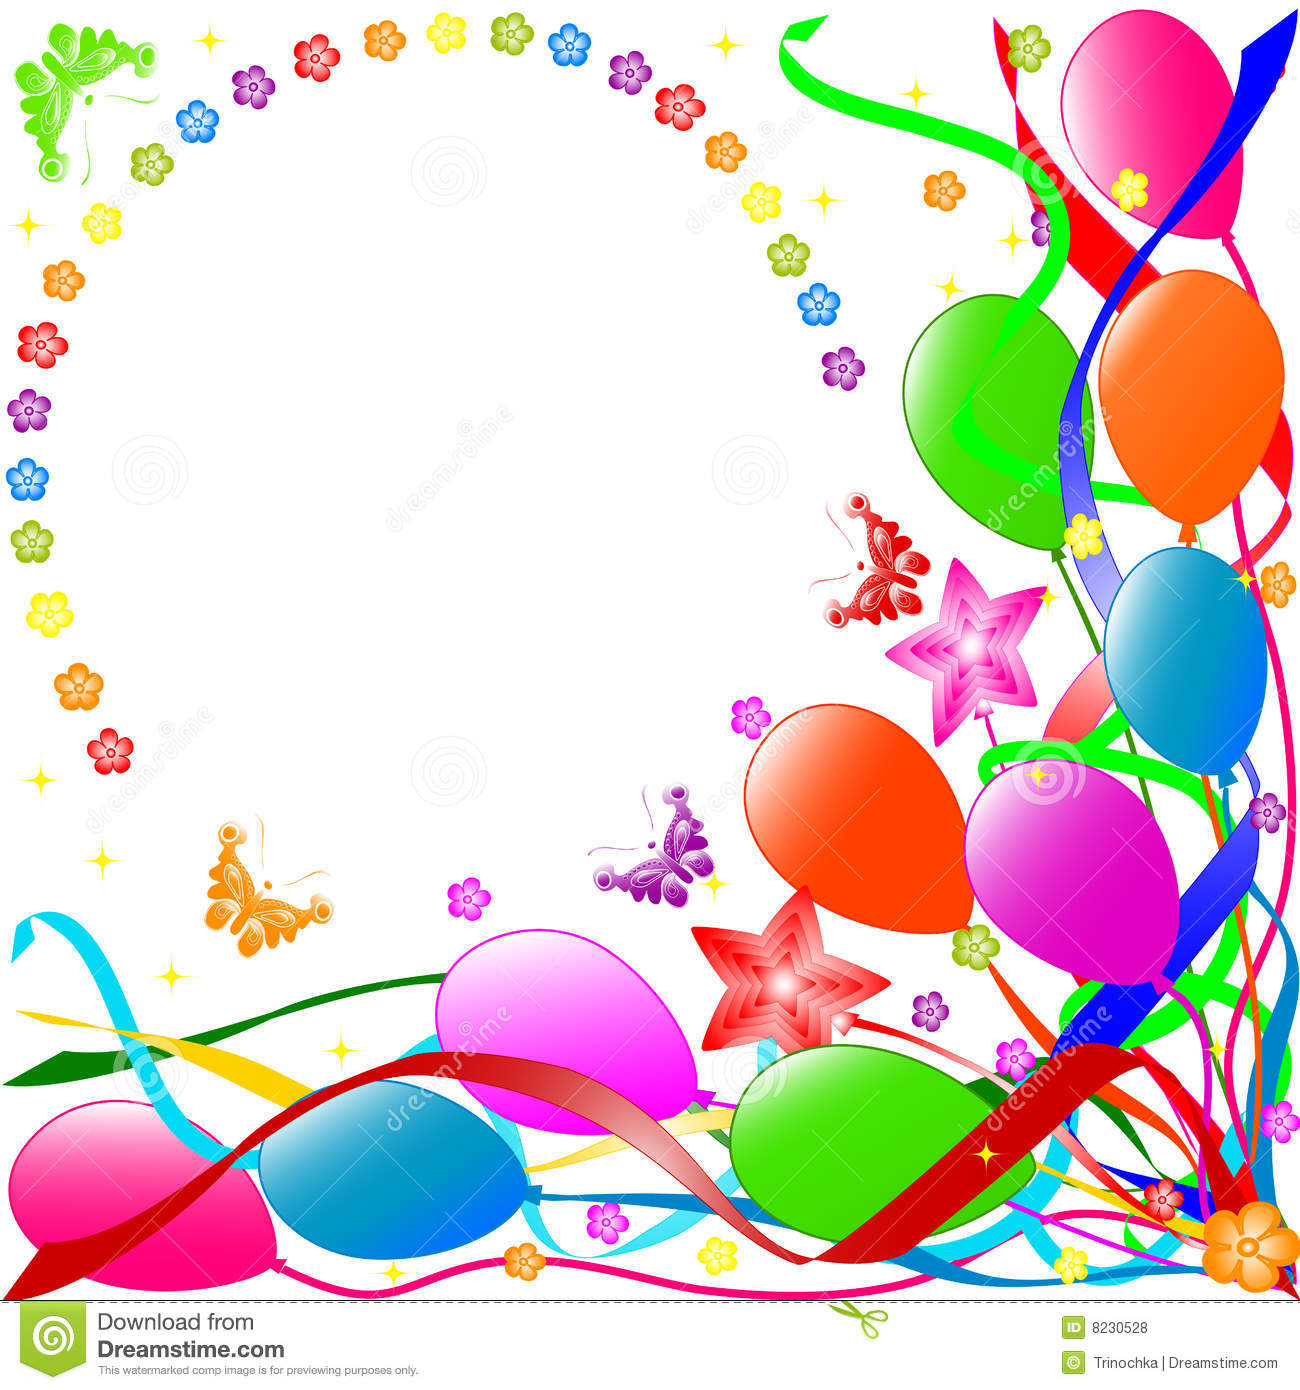 Happy Birthday Background Royalty Free Stock Images - Image: 8193039